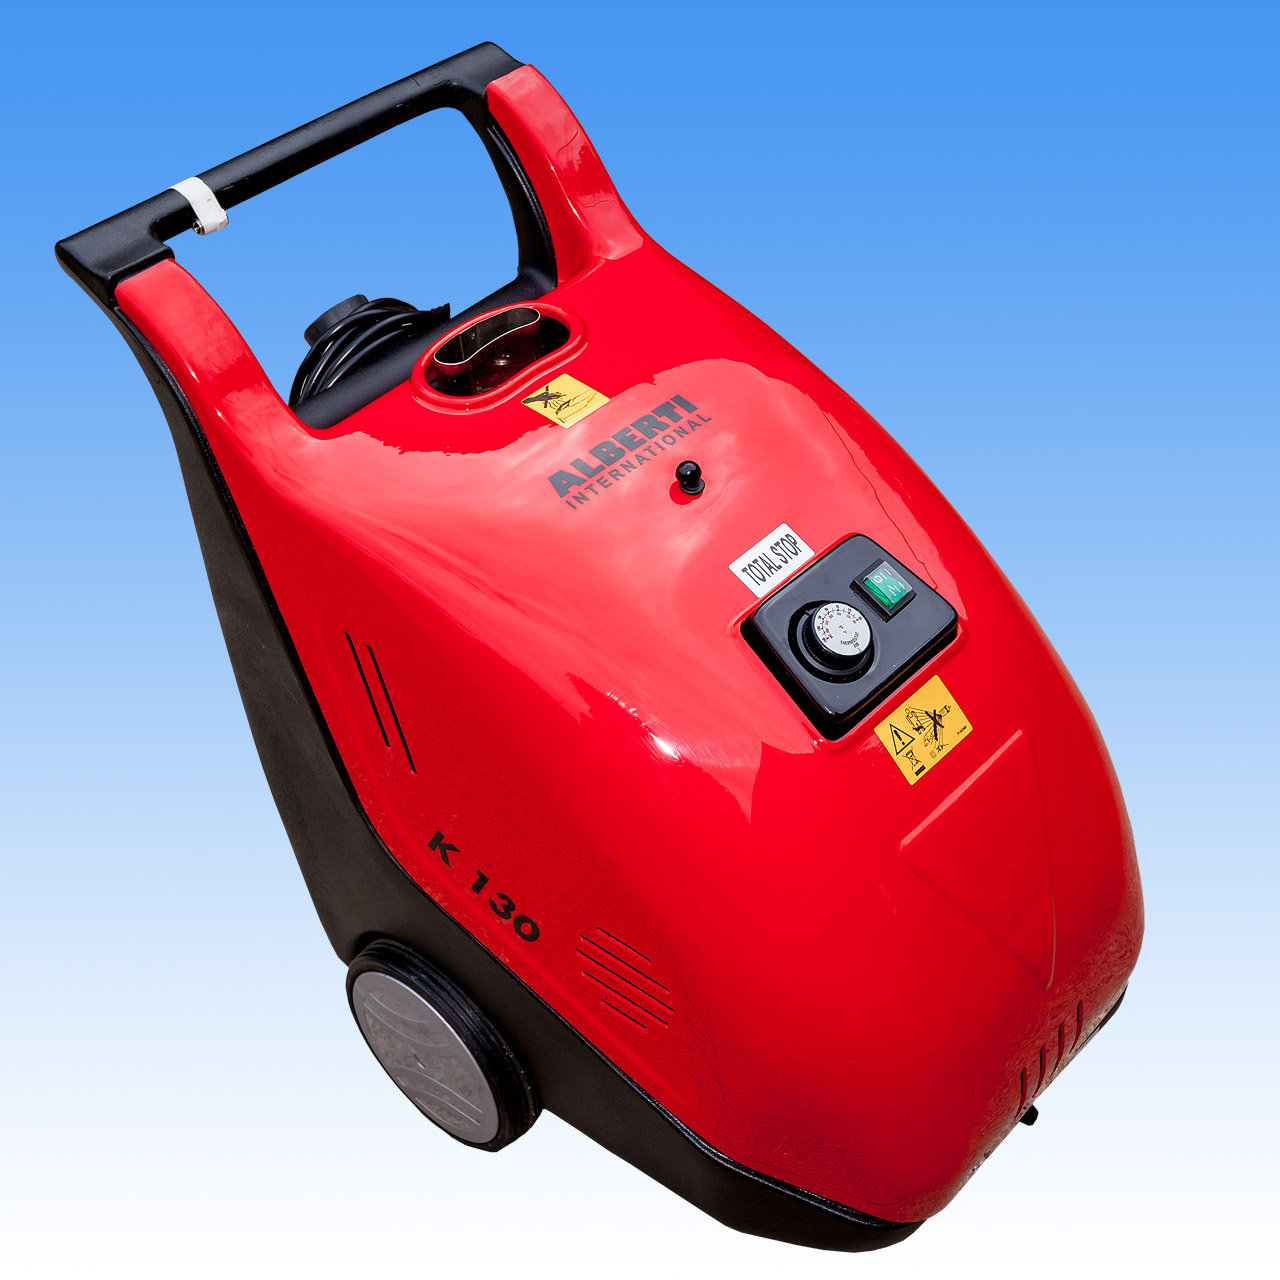 Alberti K130|8  1900psi   Electric | Diesel | HOT & COLD WATER High Pressure Washer Cleaner